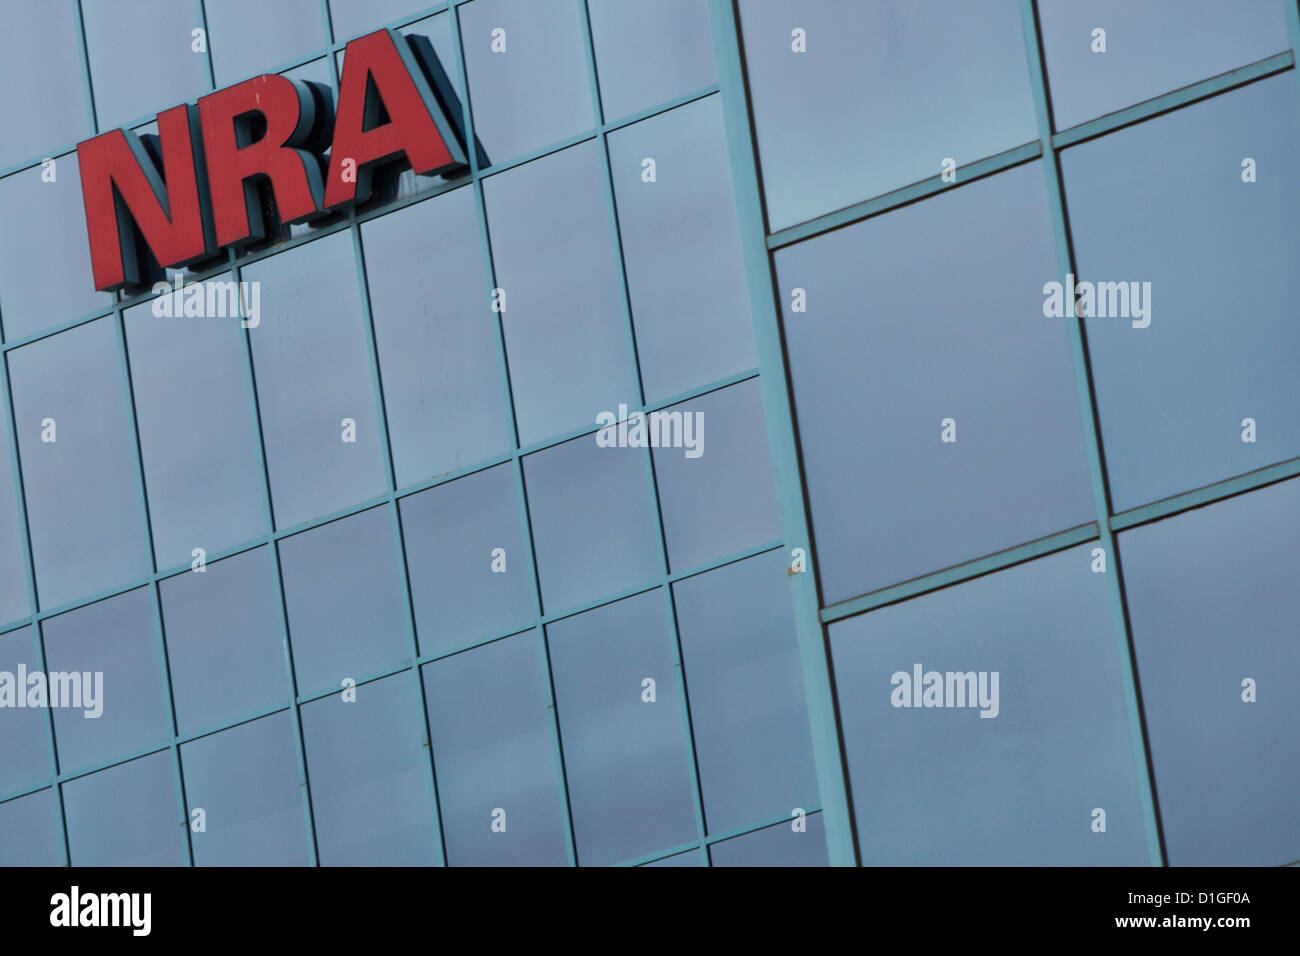 The headquarters of the National Rifle Association, also known as the NRA.  - Stock Image